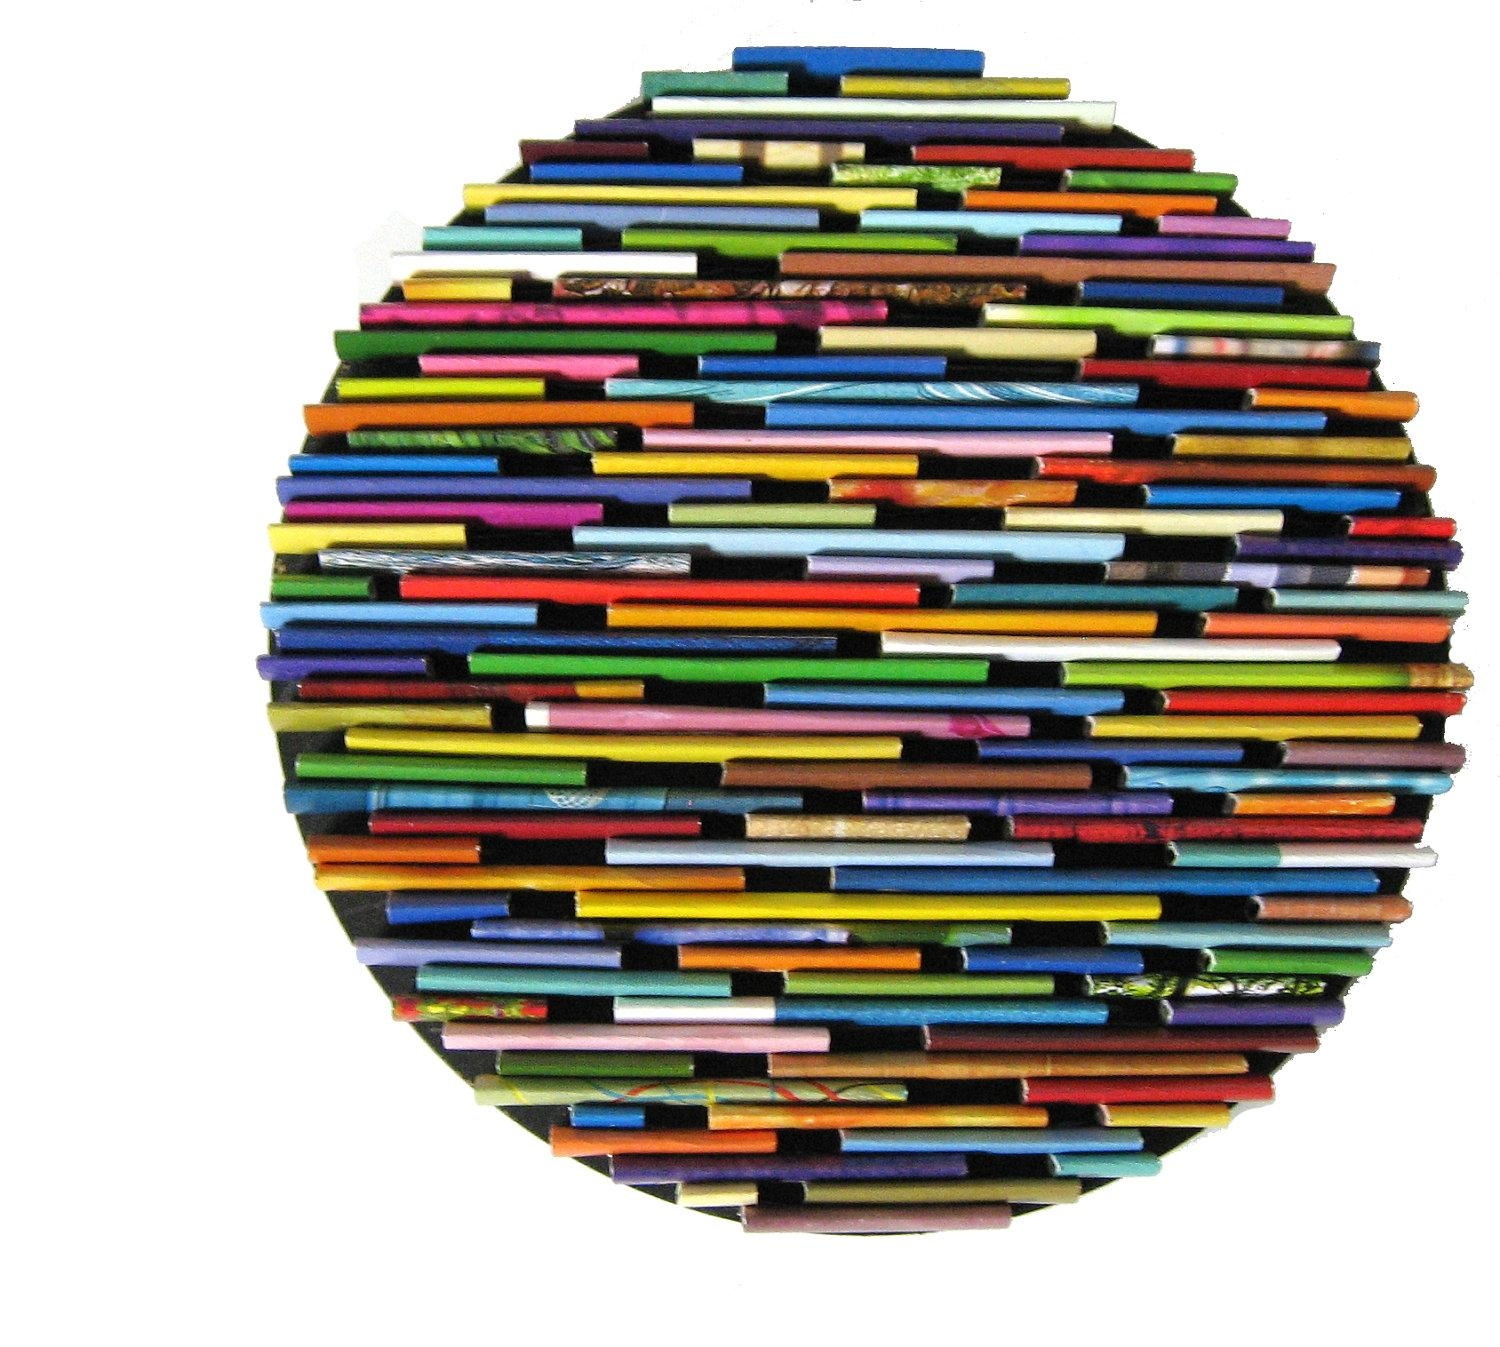 Round Wall Art Made From Recycled Magazines Colorful Unique pertaining to Recycled Wall Art